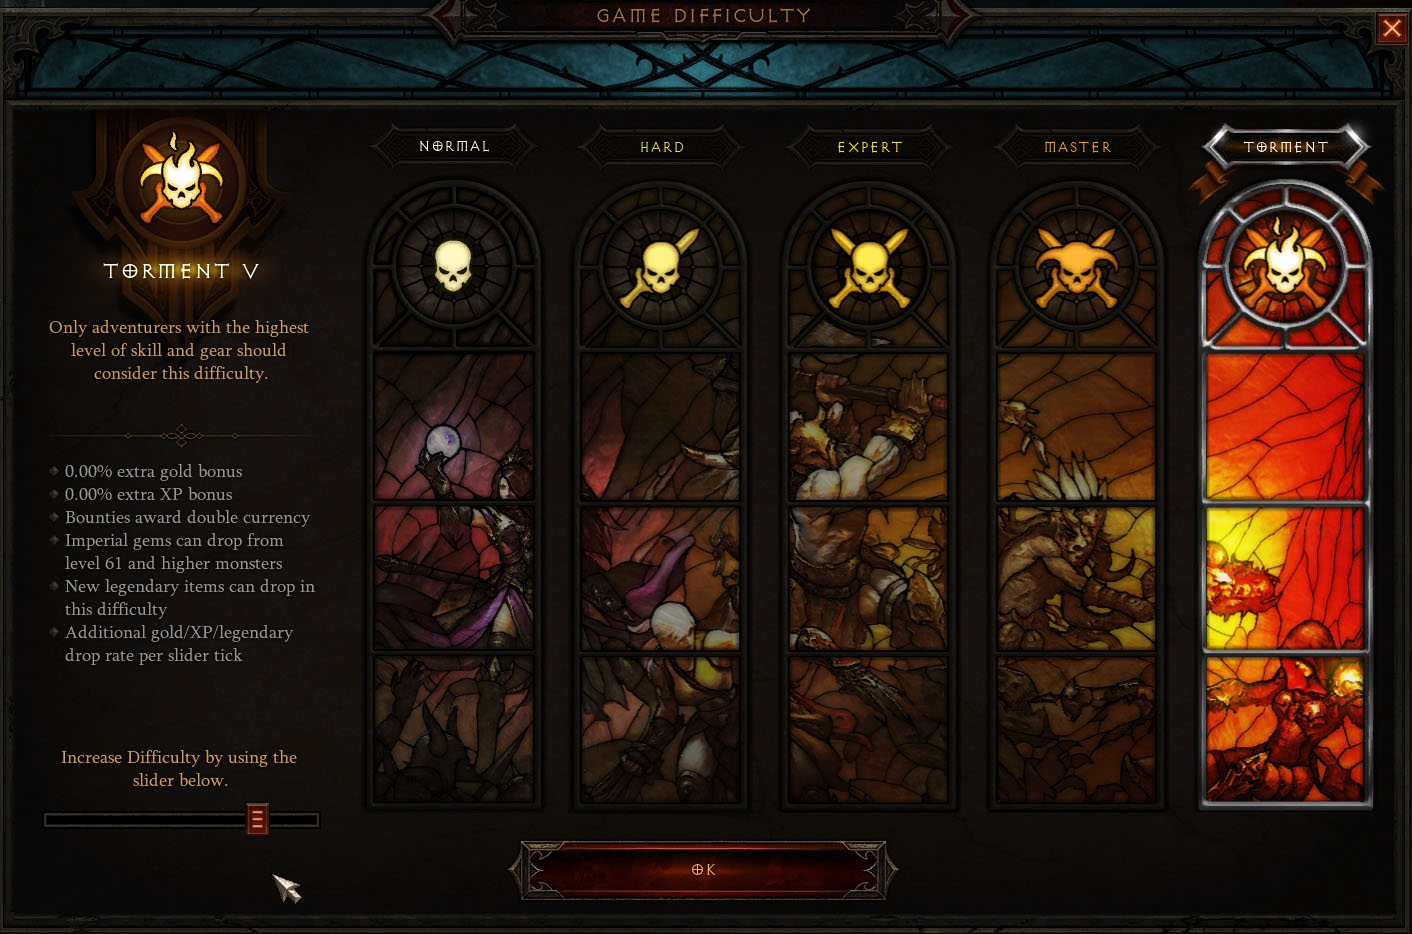 Diablo 3 naked run challenge requirements hentia movies